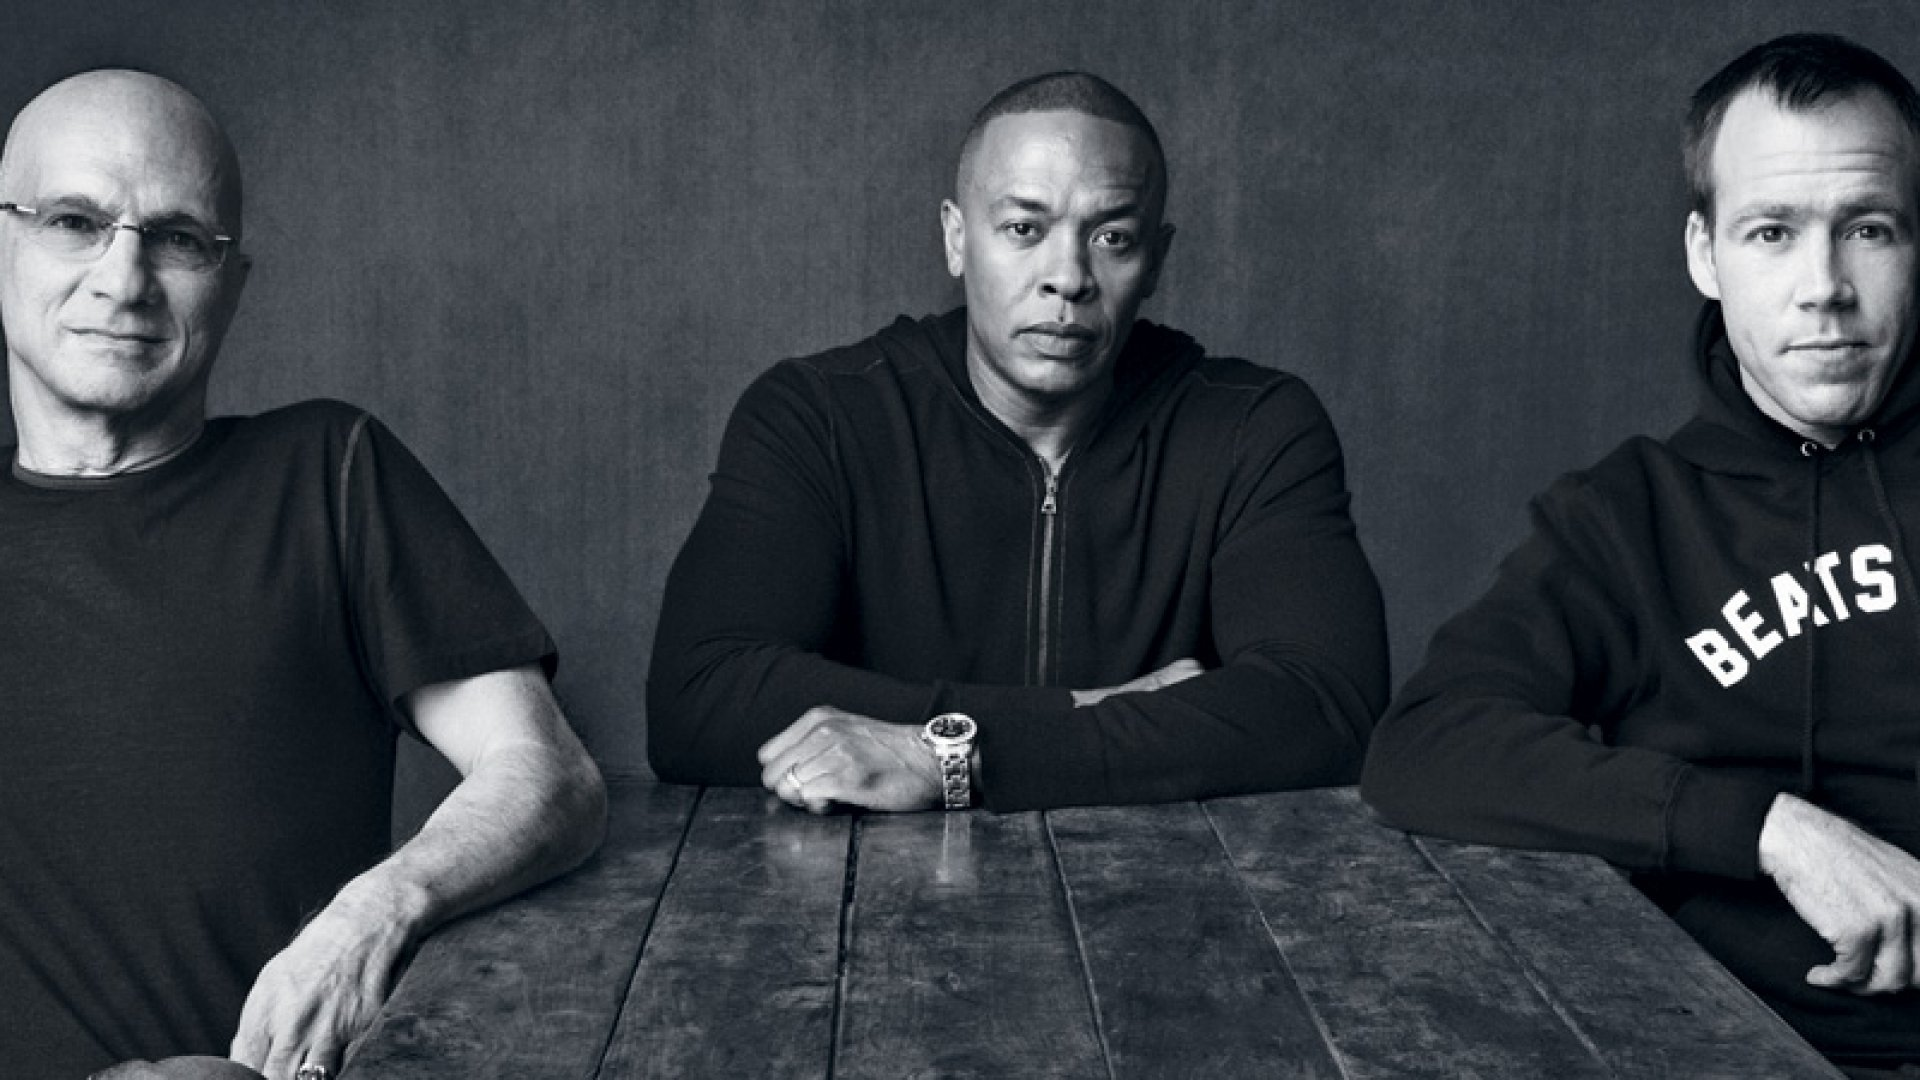 L-R: Beats Co-Founders Jimmy Iovine and Dr. Dre, and Beats President Luke Wood